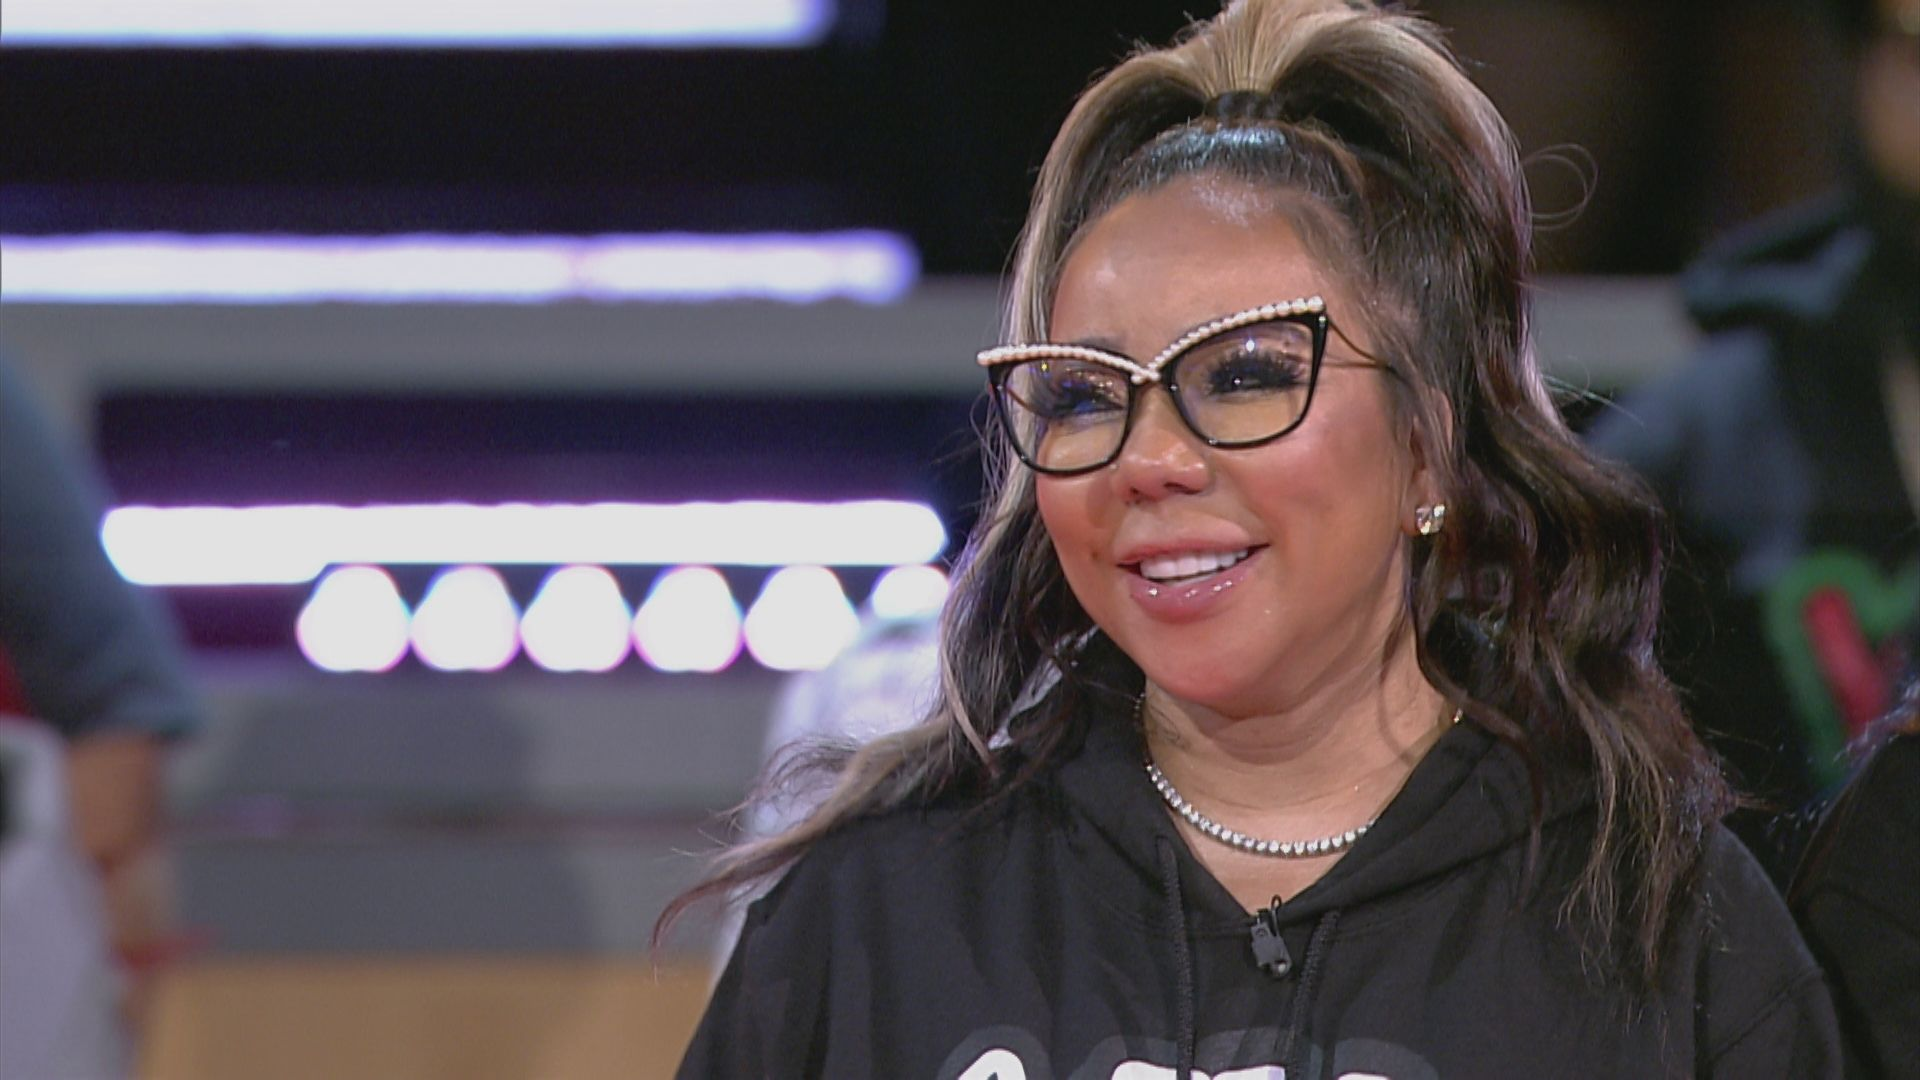 Tiny Harris Shares A Photo With Toya Johnson And Has Fans In Awe